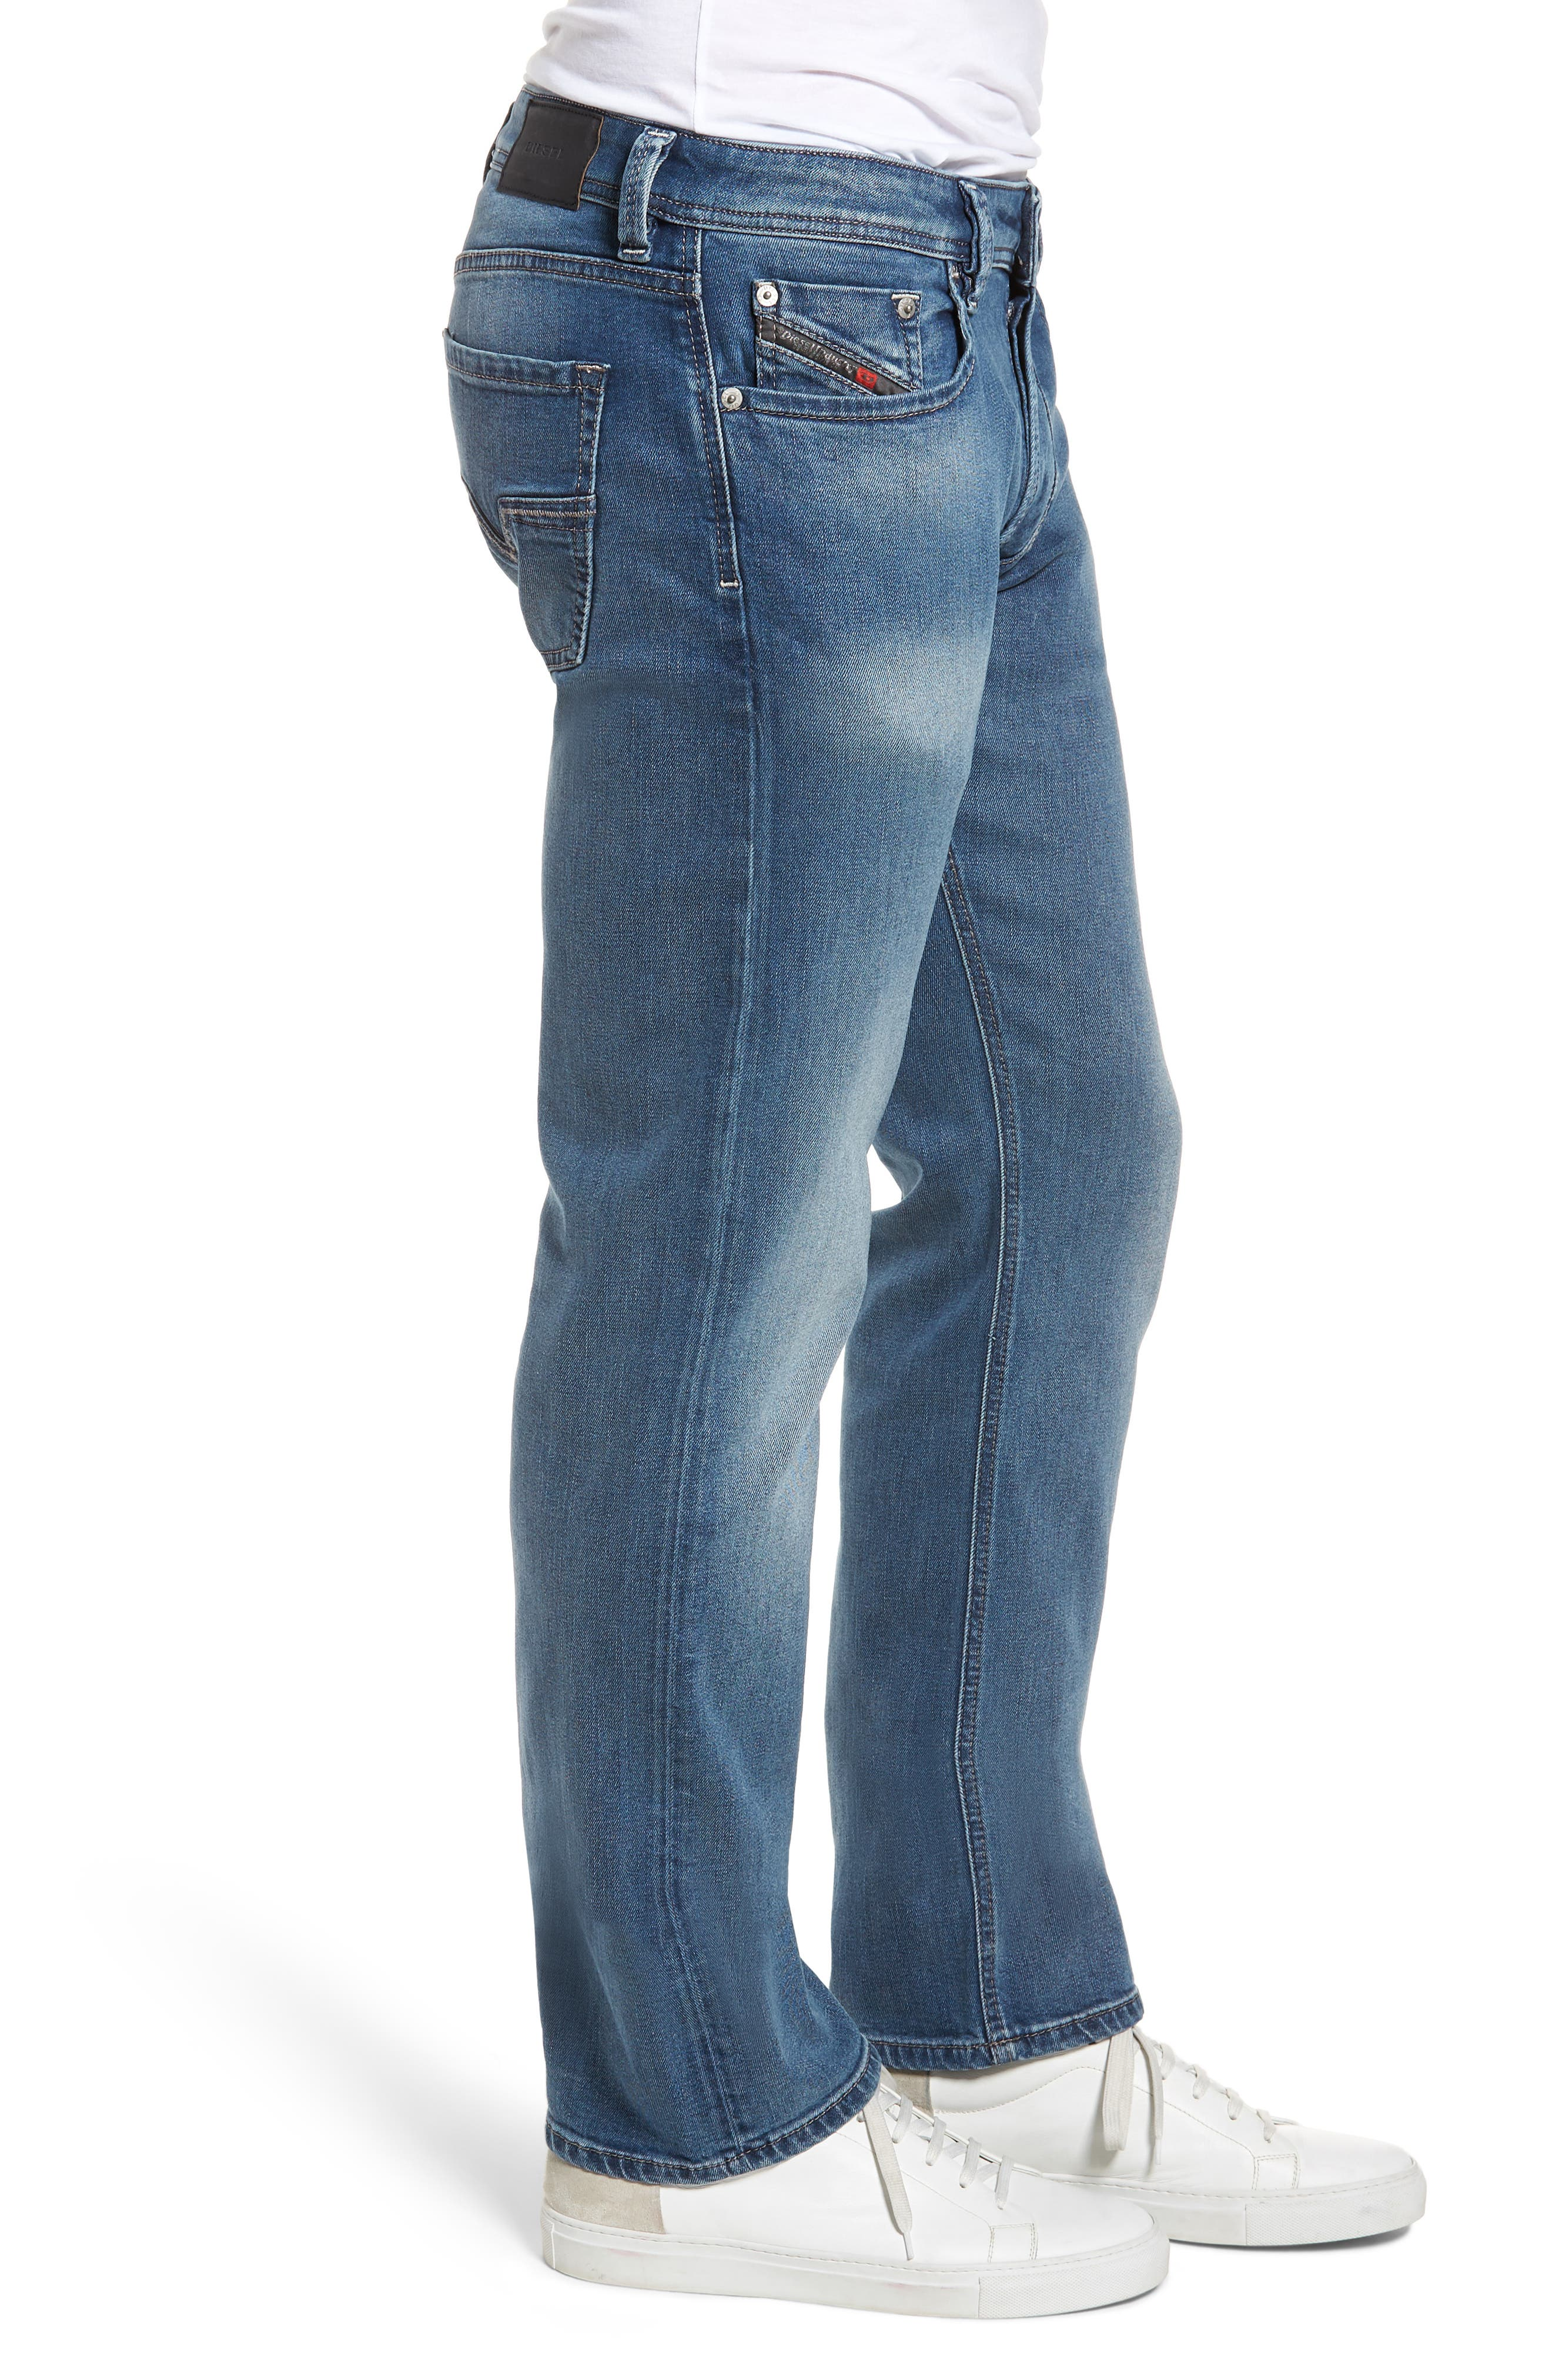 Larkee Relaxed Fit Jeans,                             Alternate thumbnail 3, color,                             900